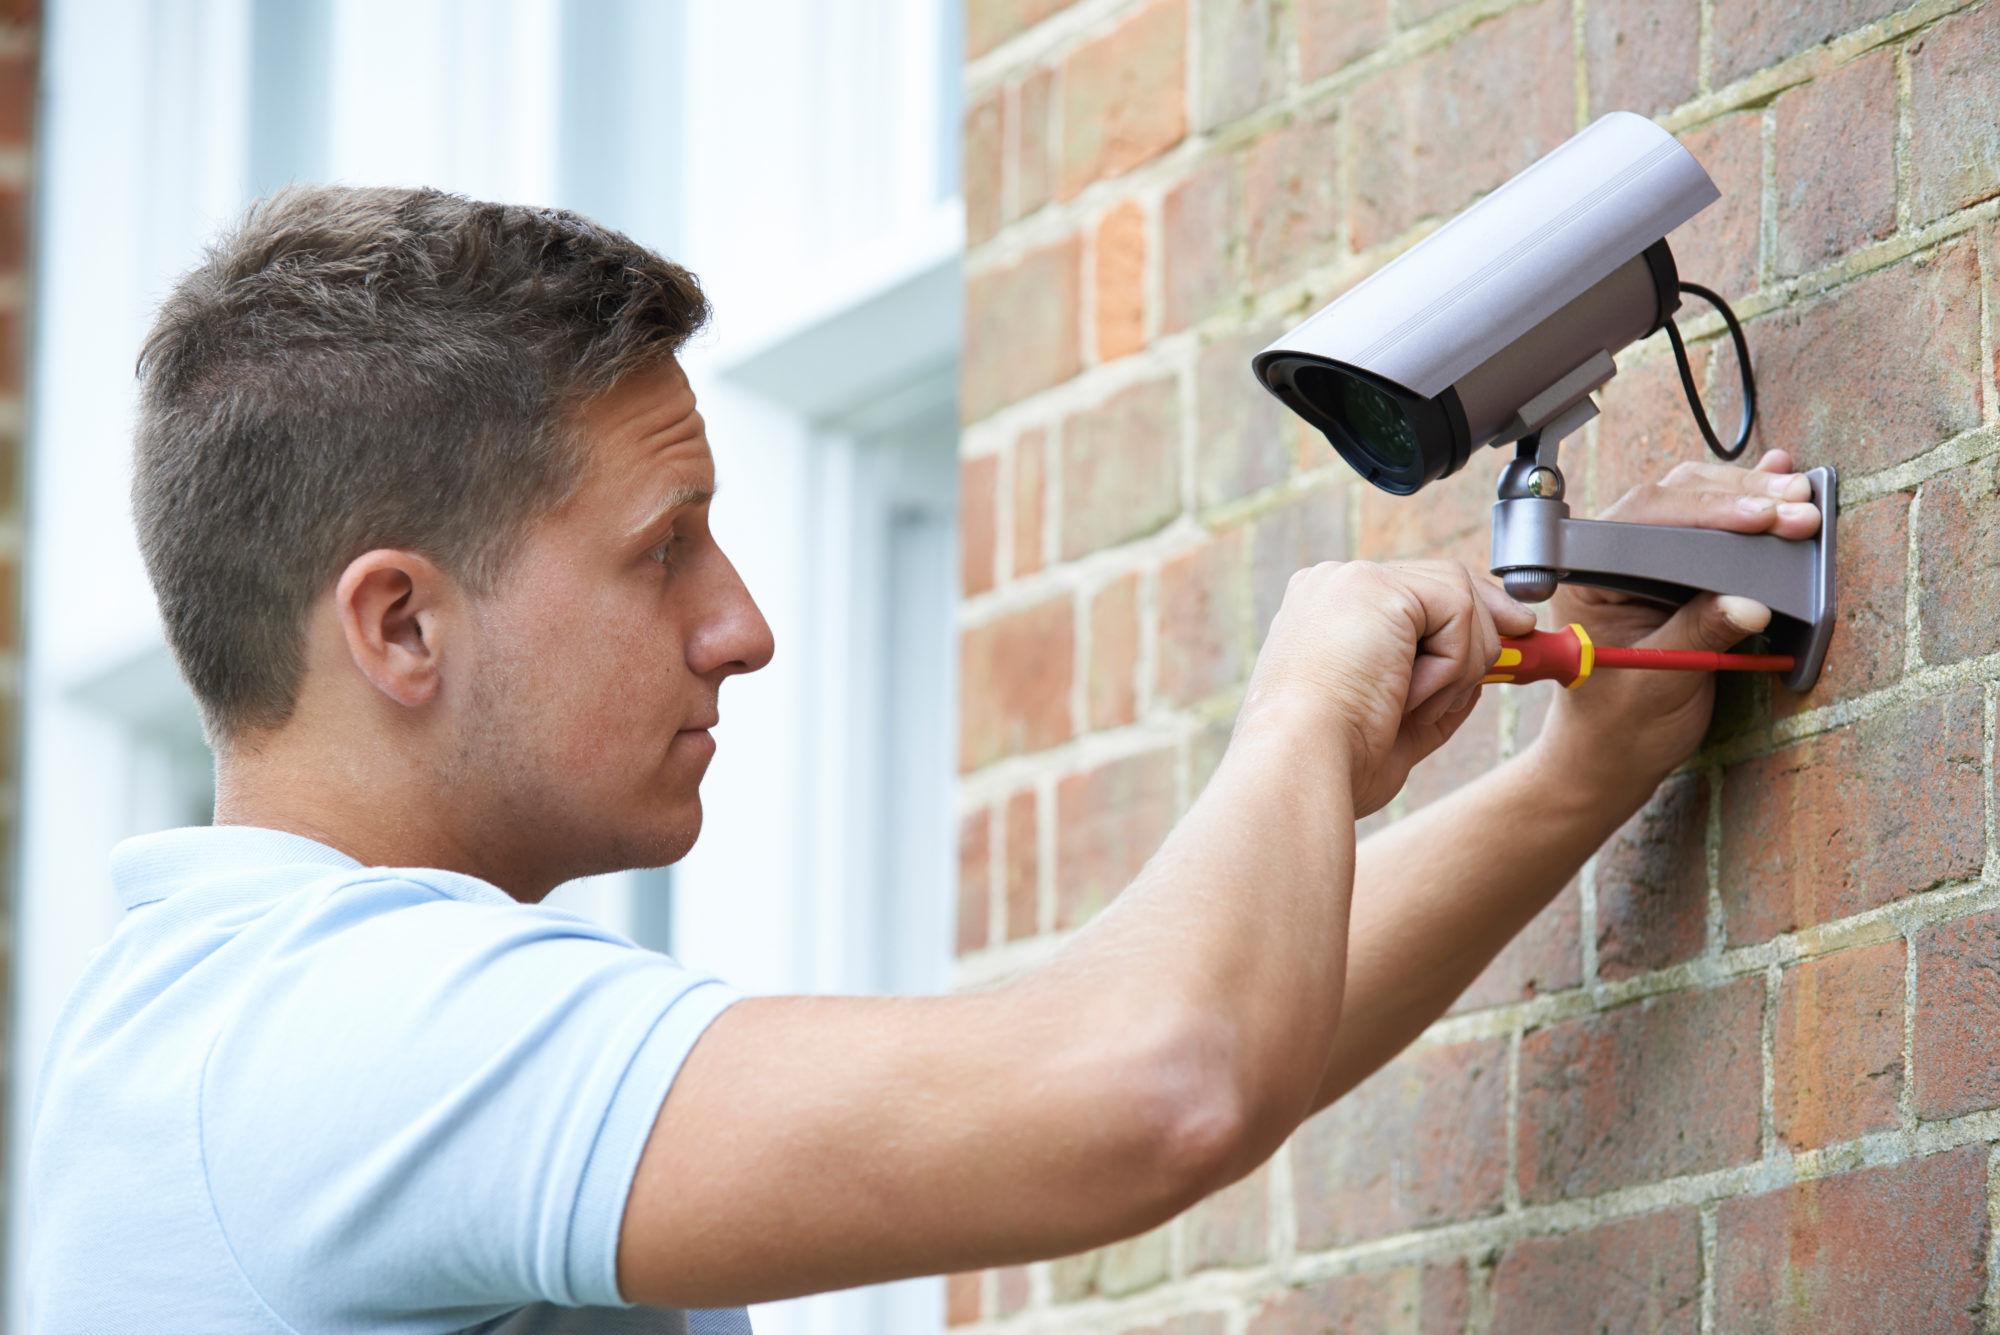 Certified technician installs security camera